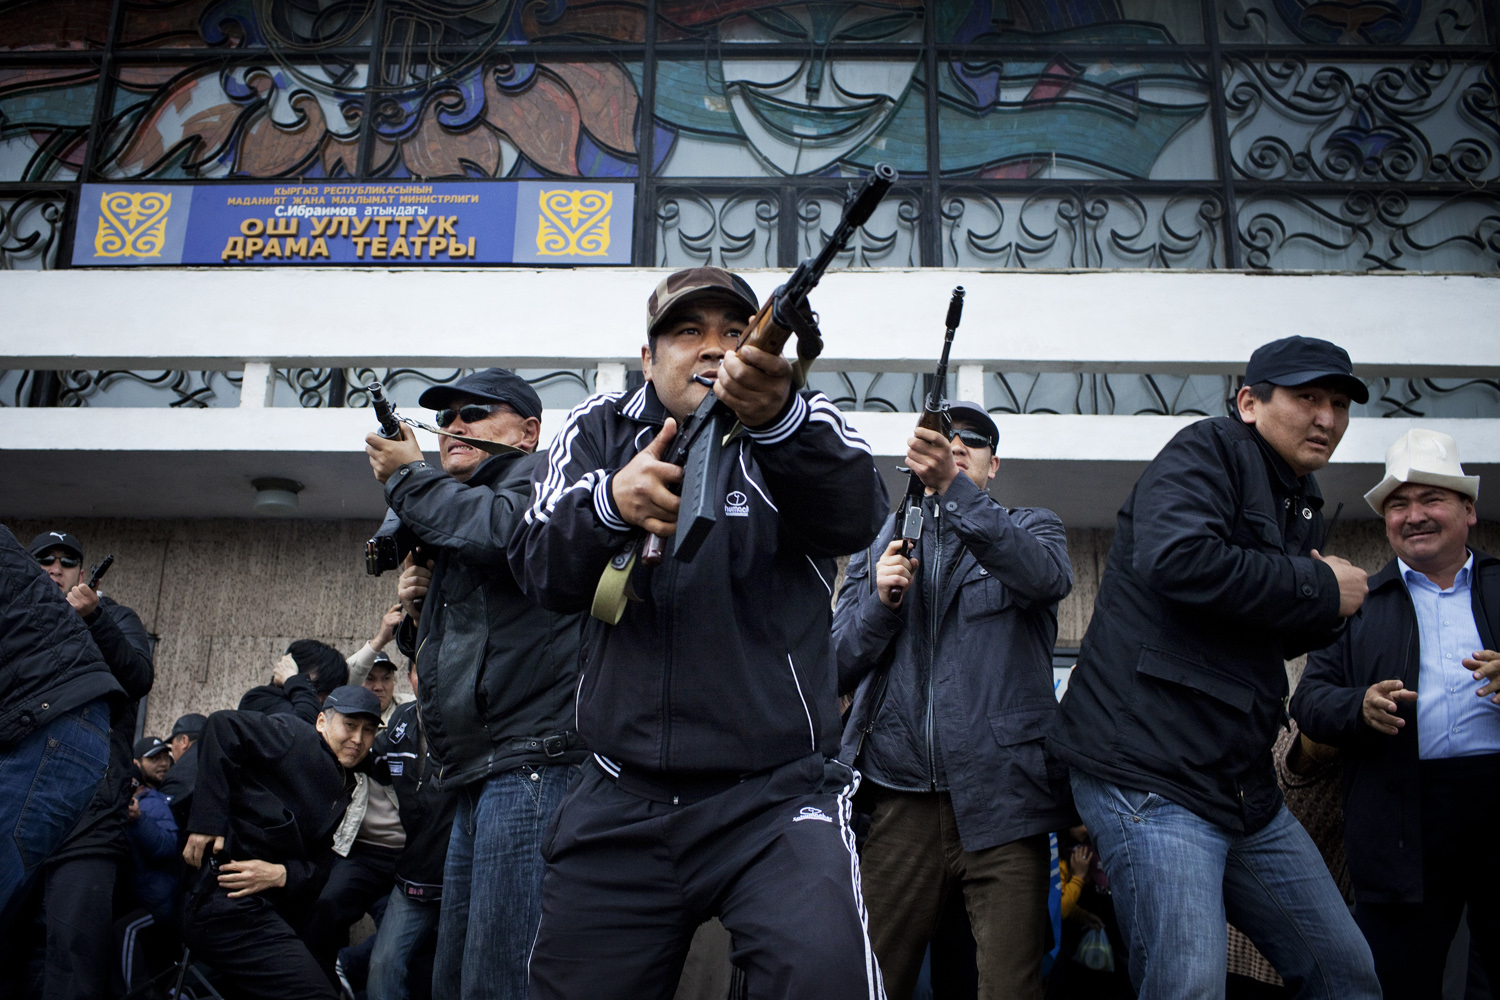 2010. The personal bodyguards of toppled President Bakiyev shoot into the air in an attempt to calm down anti-Bakiyev demonstrators in Osh, in April 2010. Bakiyev later escaped the city and flew to Kazakhstan.